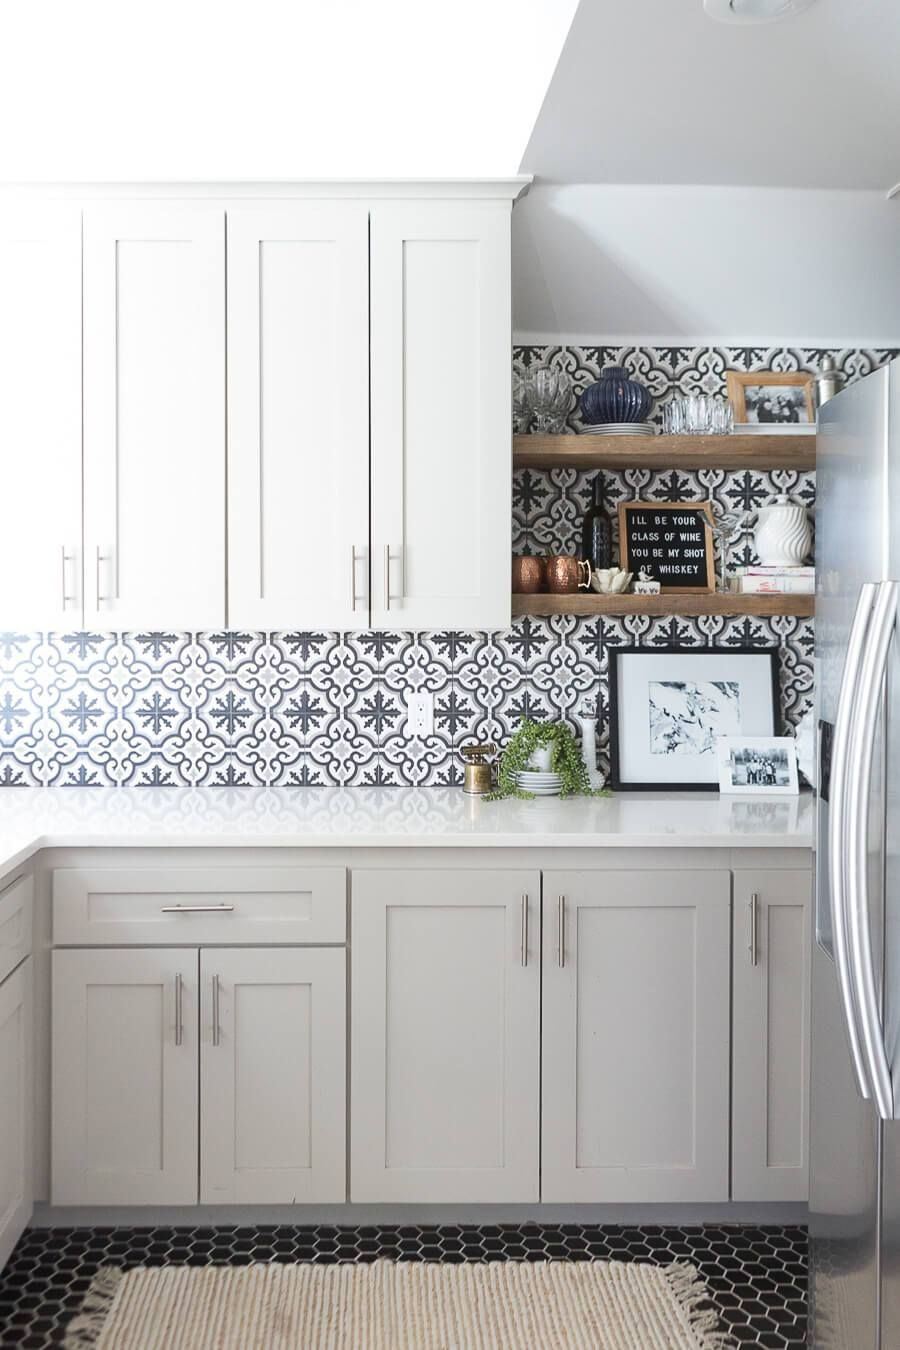 - 11 Kitchen Tile Backsplash Ideas For White Cabinets – That Aren't